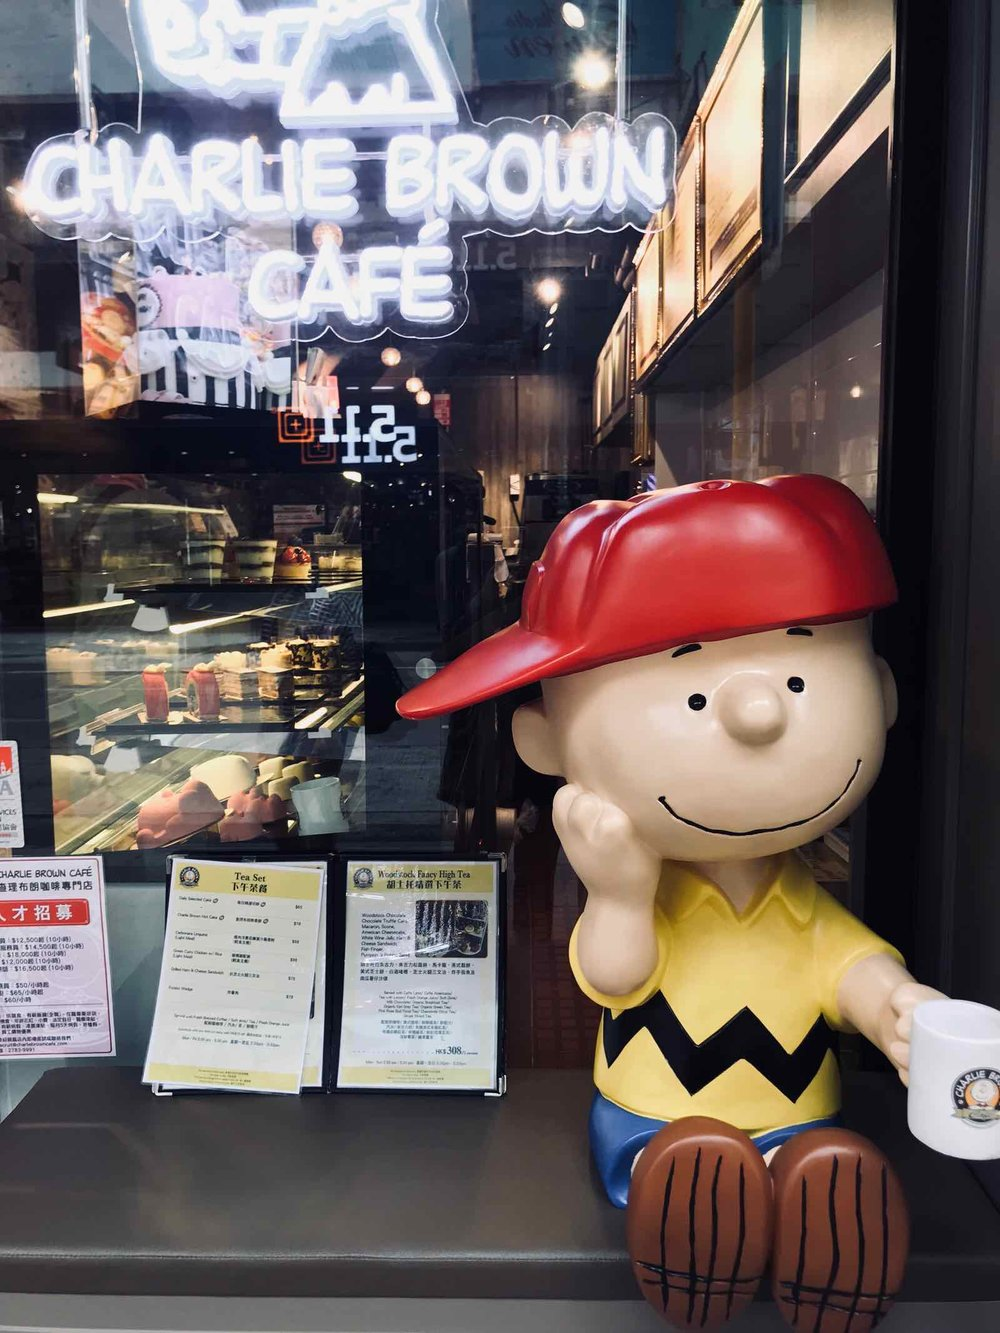 charlie-brown-cafe-hong-kong.jpg